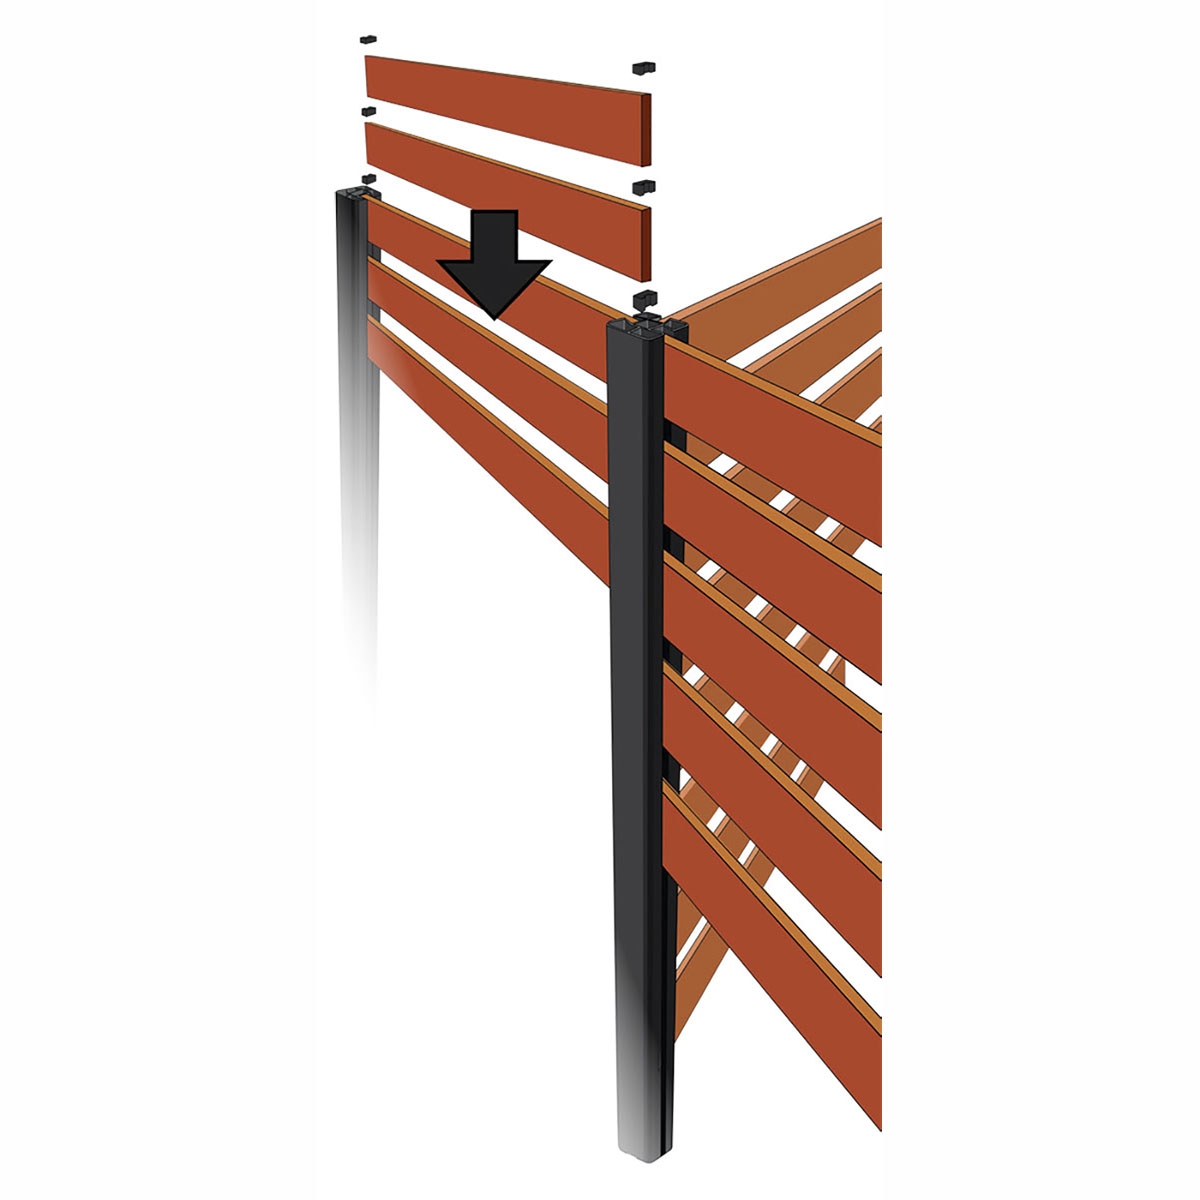 Screen Up 3 way corner post illustration